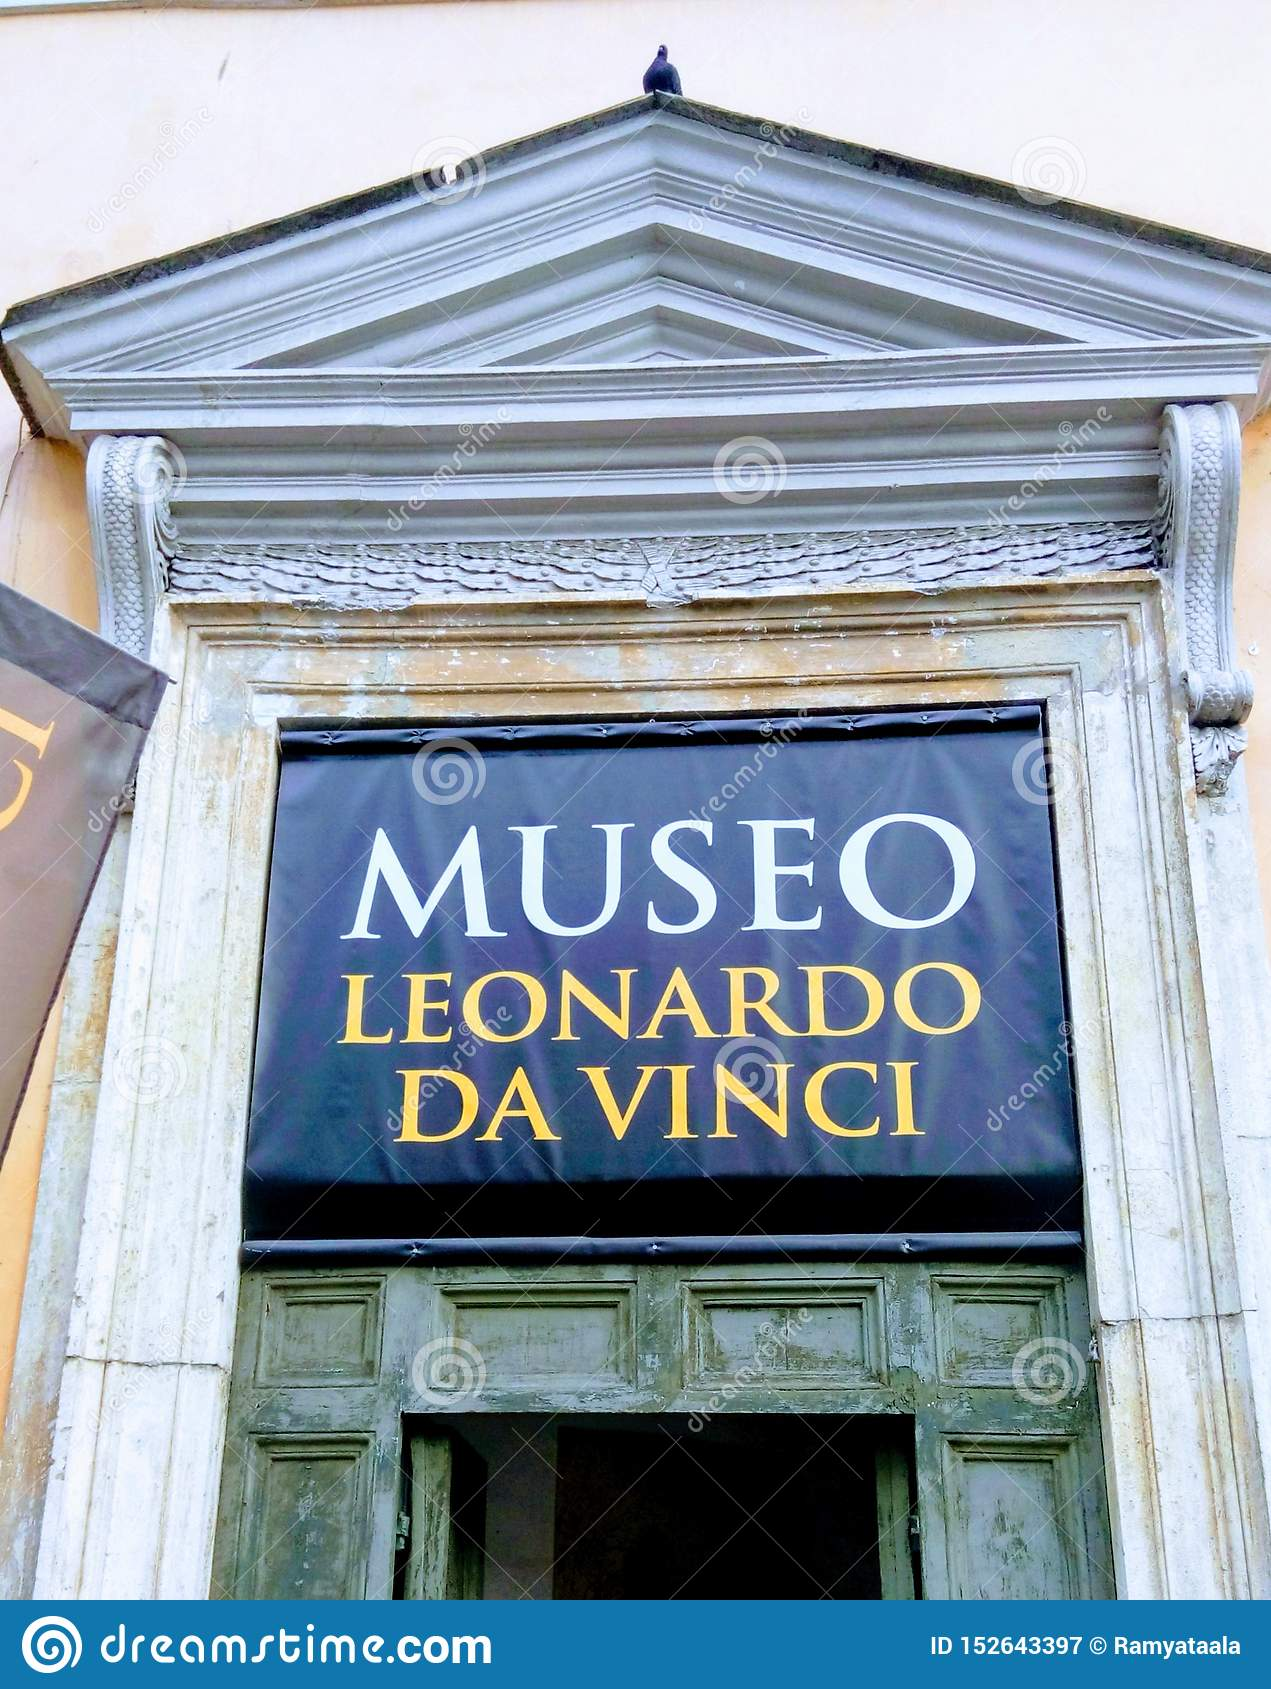 Rome, Italy, 5th of Oct. 2015: LEONARDO DA VINCI MUSEUM - PIAZZA DEL POPOLO